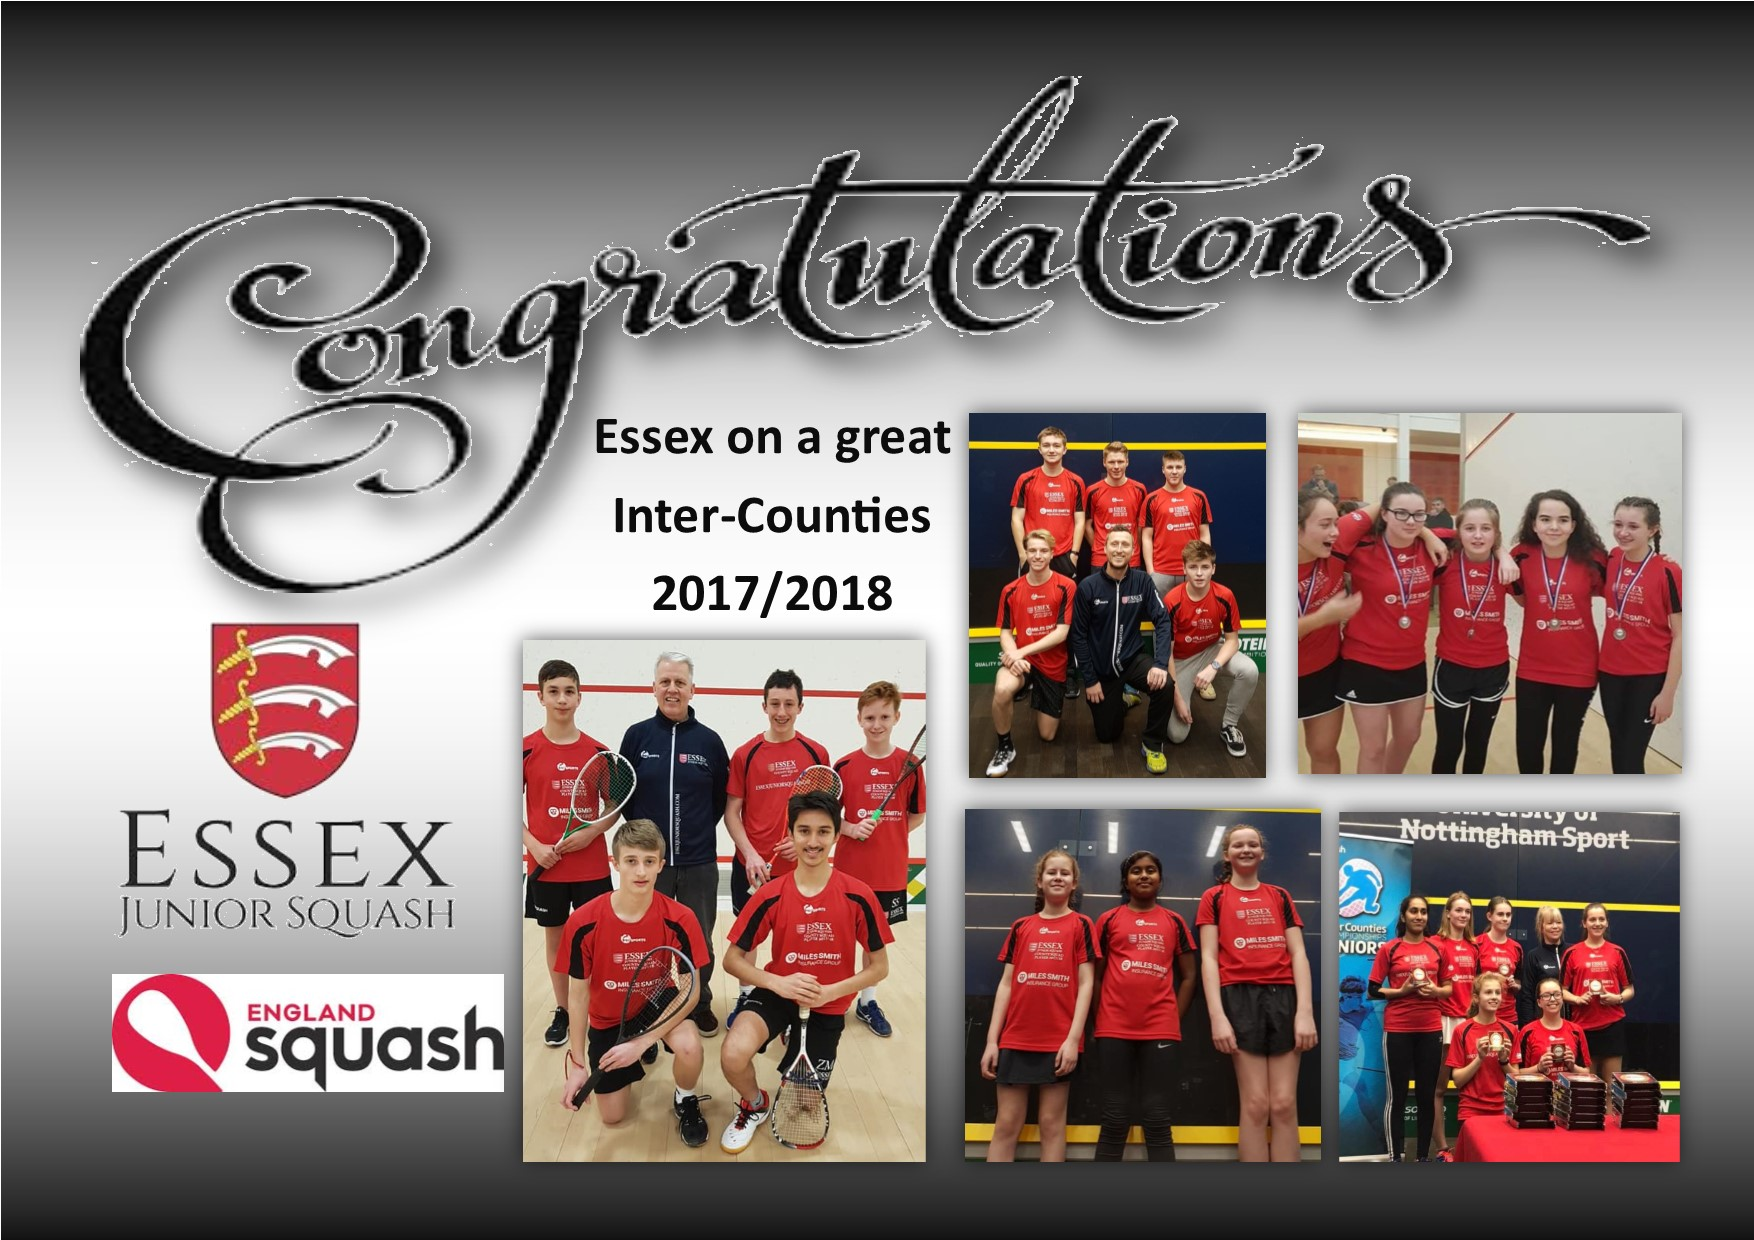 Essex juniors bring home medals and memories from Inter-County Finals